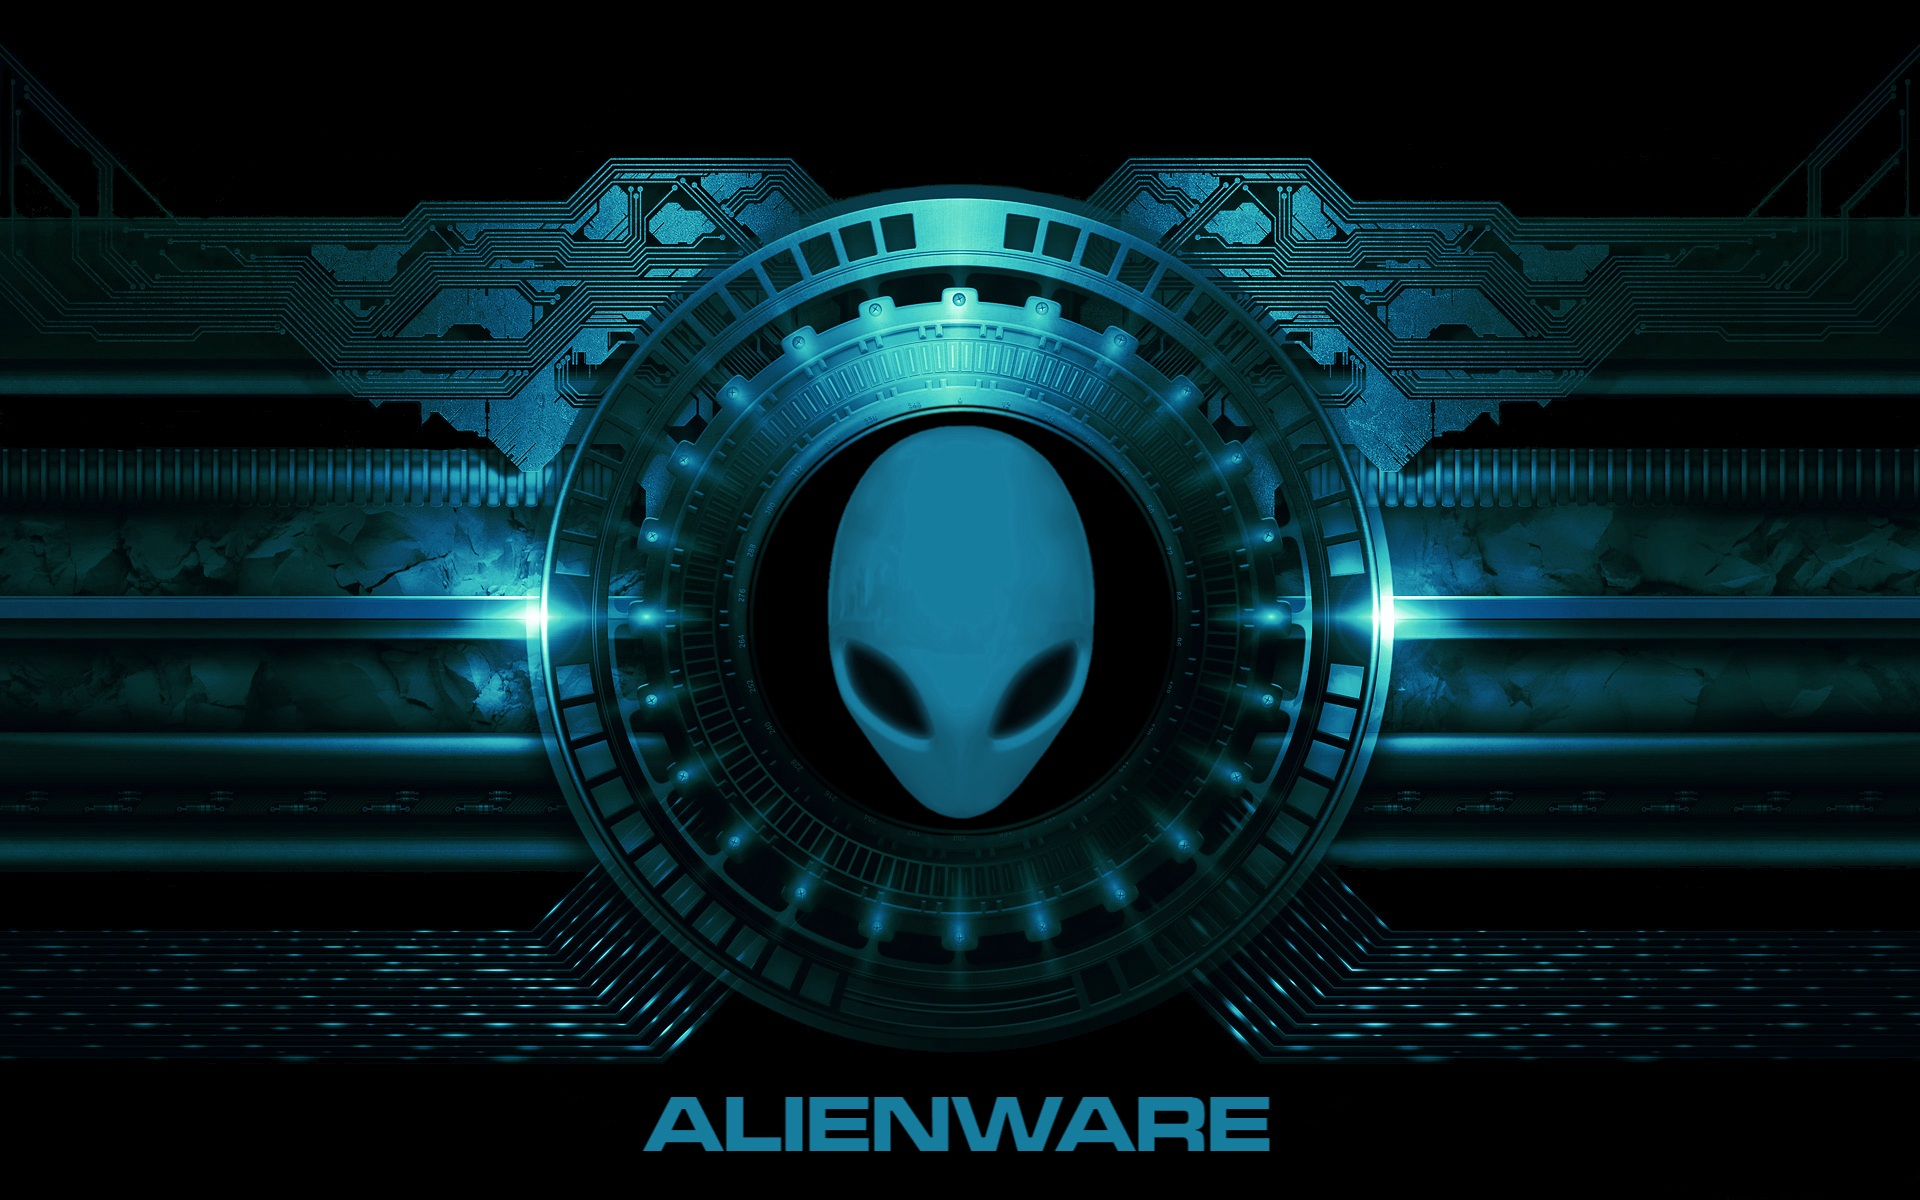 Alienware Desktop Backgrounds Alienware Fx Themes